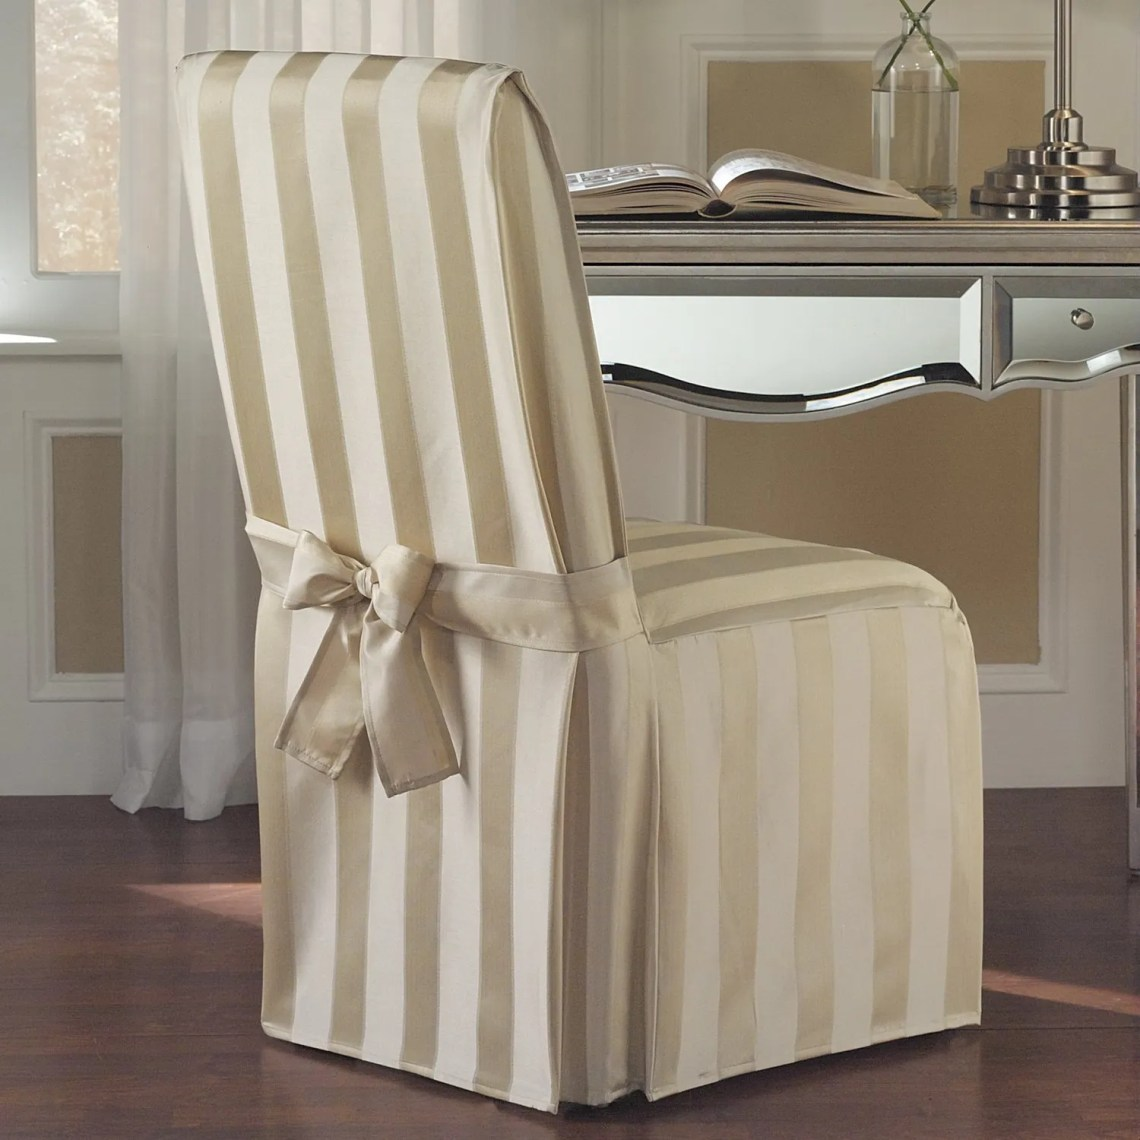 Image Result For Round Back Chair Covers For Dining Room Chairs